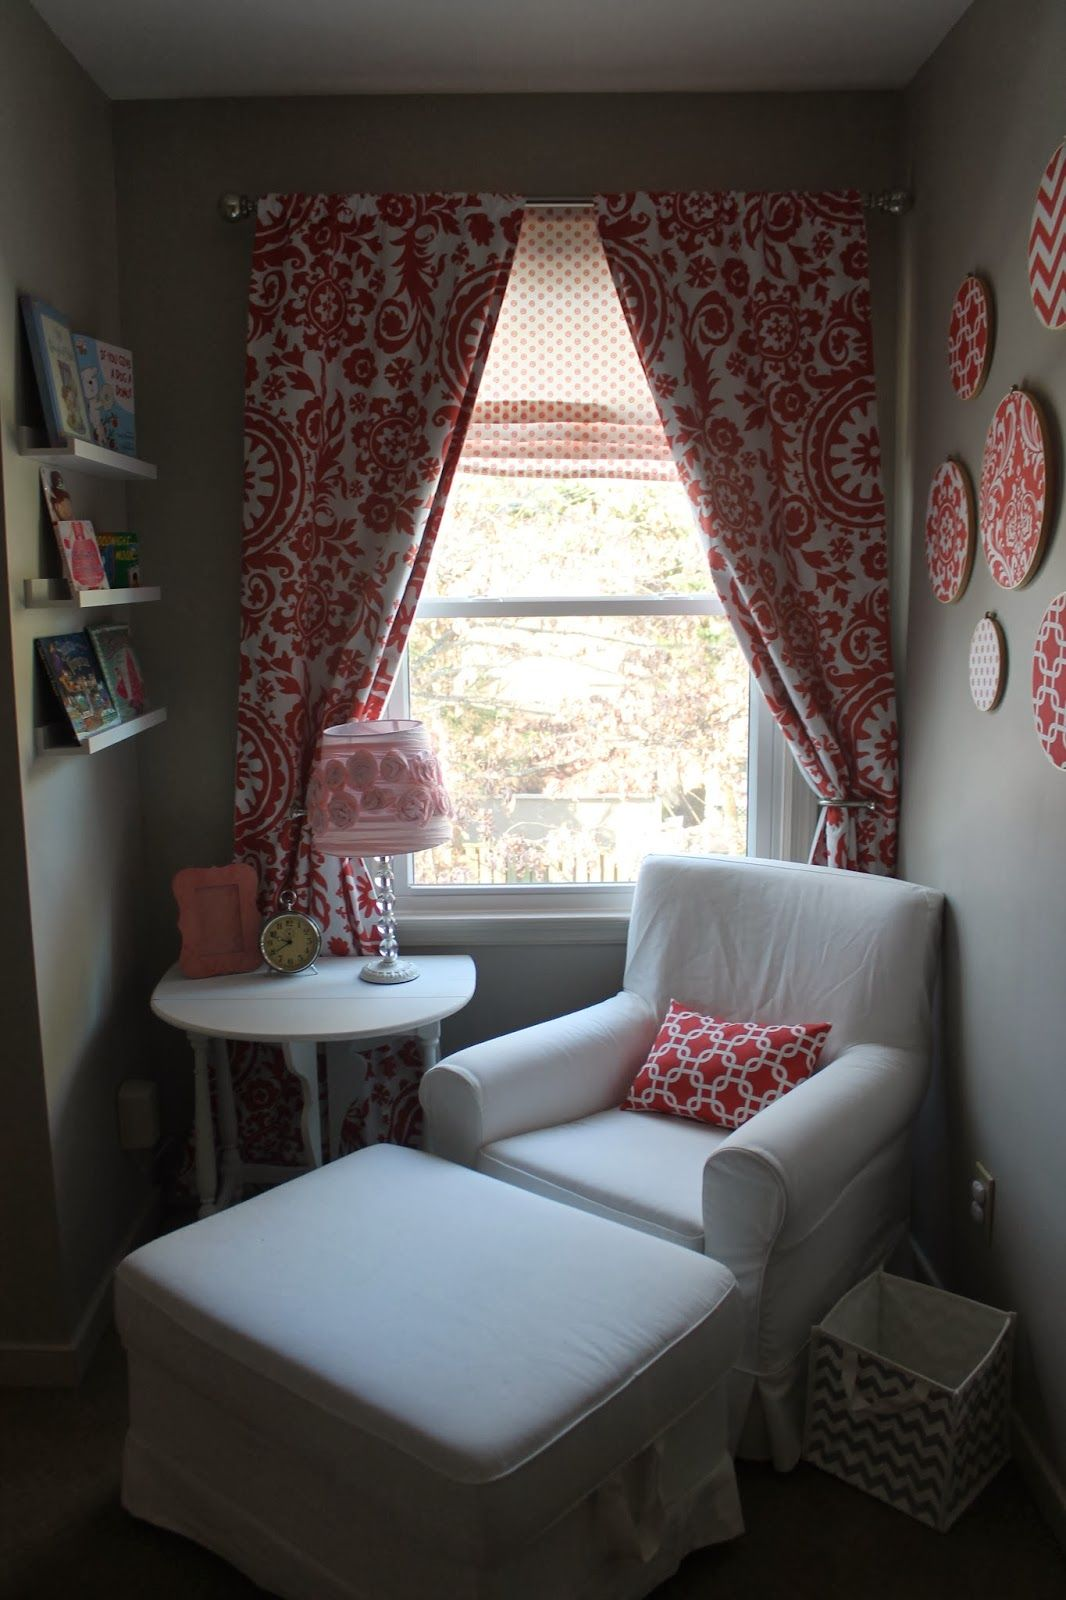 Ikea JennyLund Chair and Ottoman DIY embroidery hoop wall art faux roman shade Ikea Ribba picture ledges for books. & Jennylund chair from Ikea. With monogram pillow. Would make pillow ...